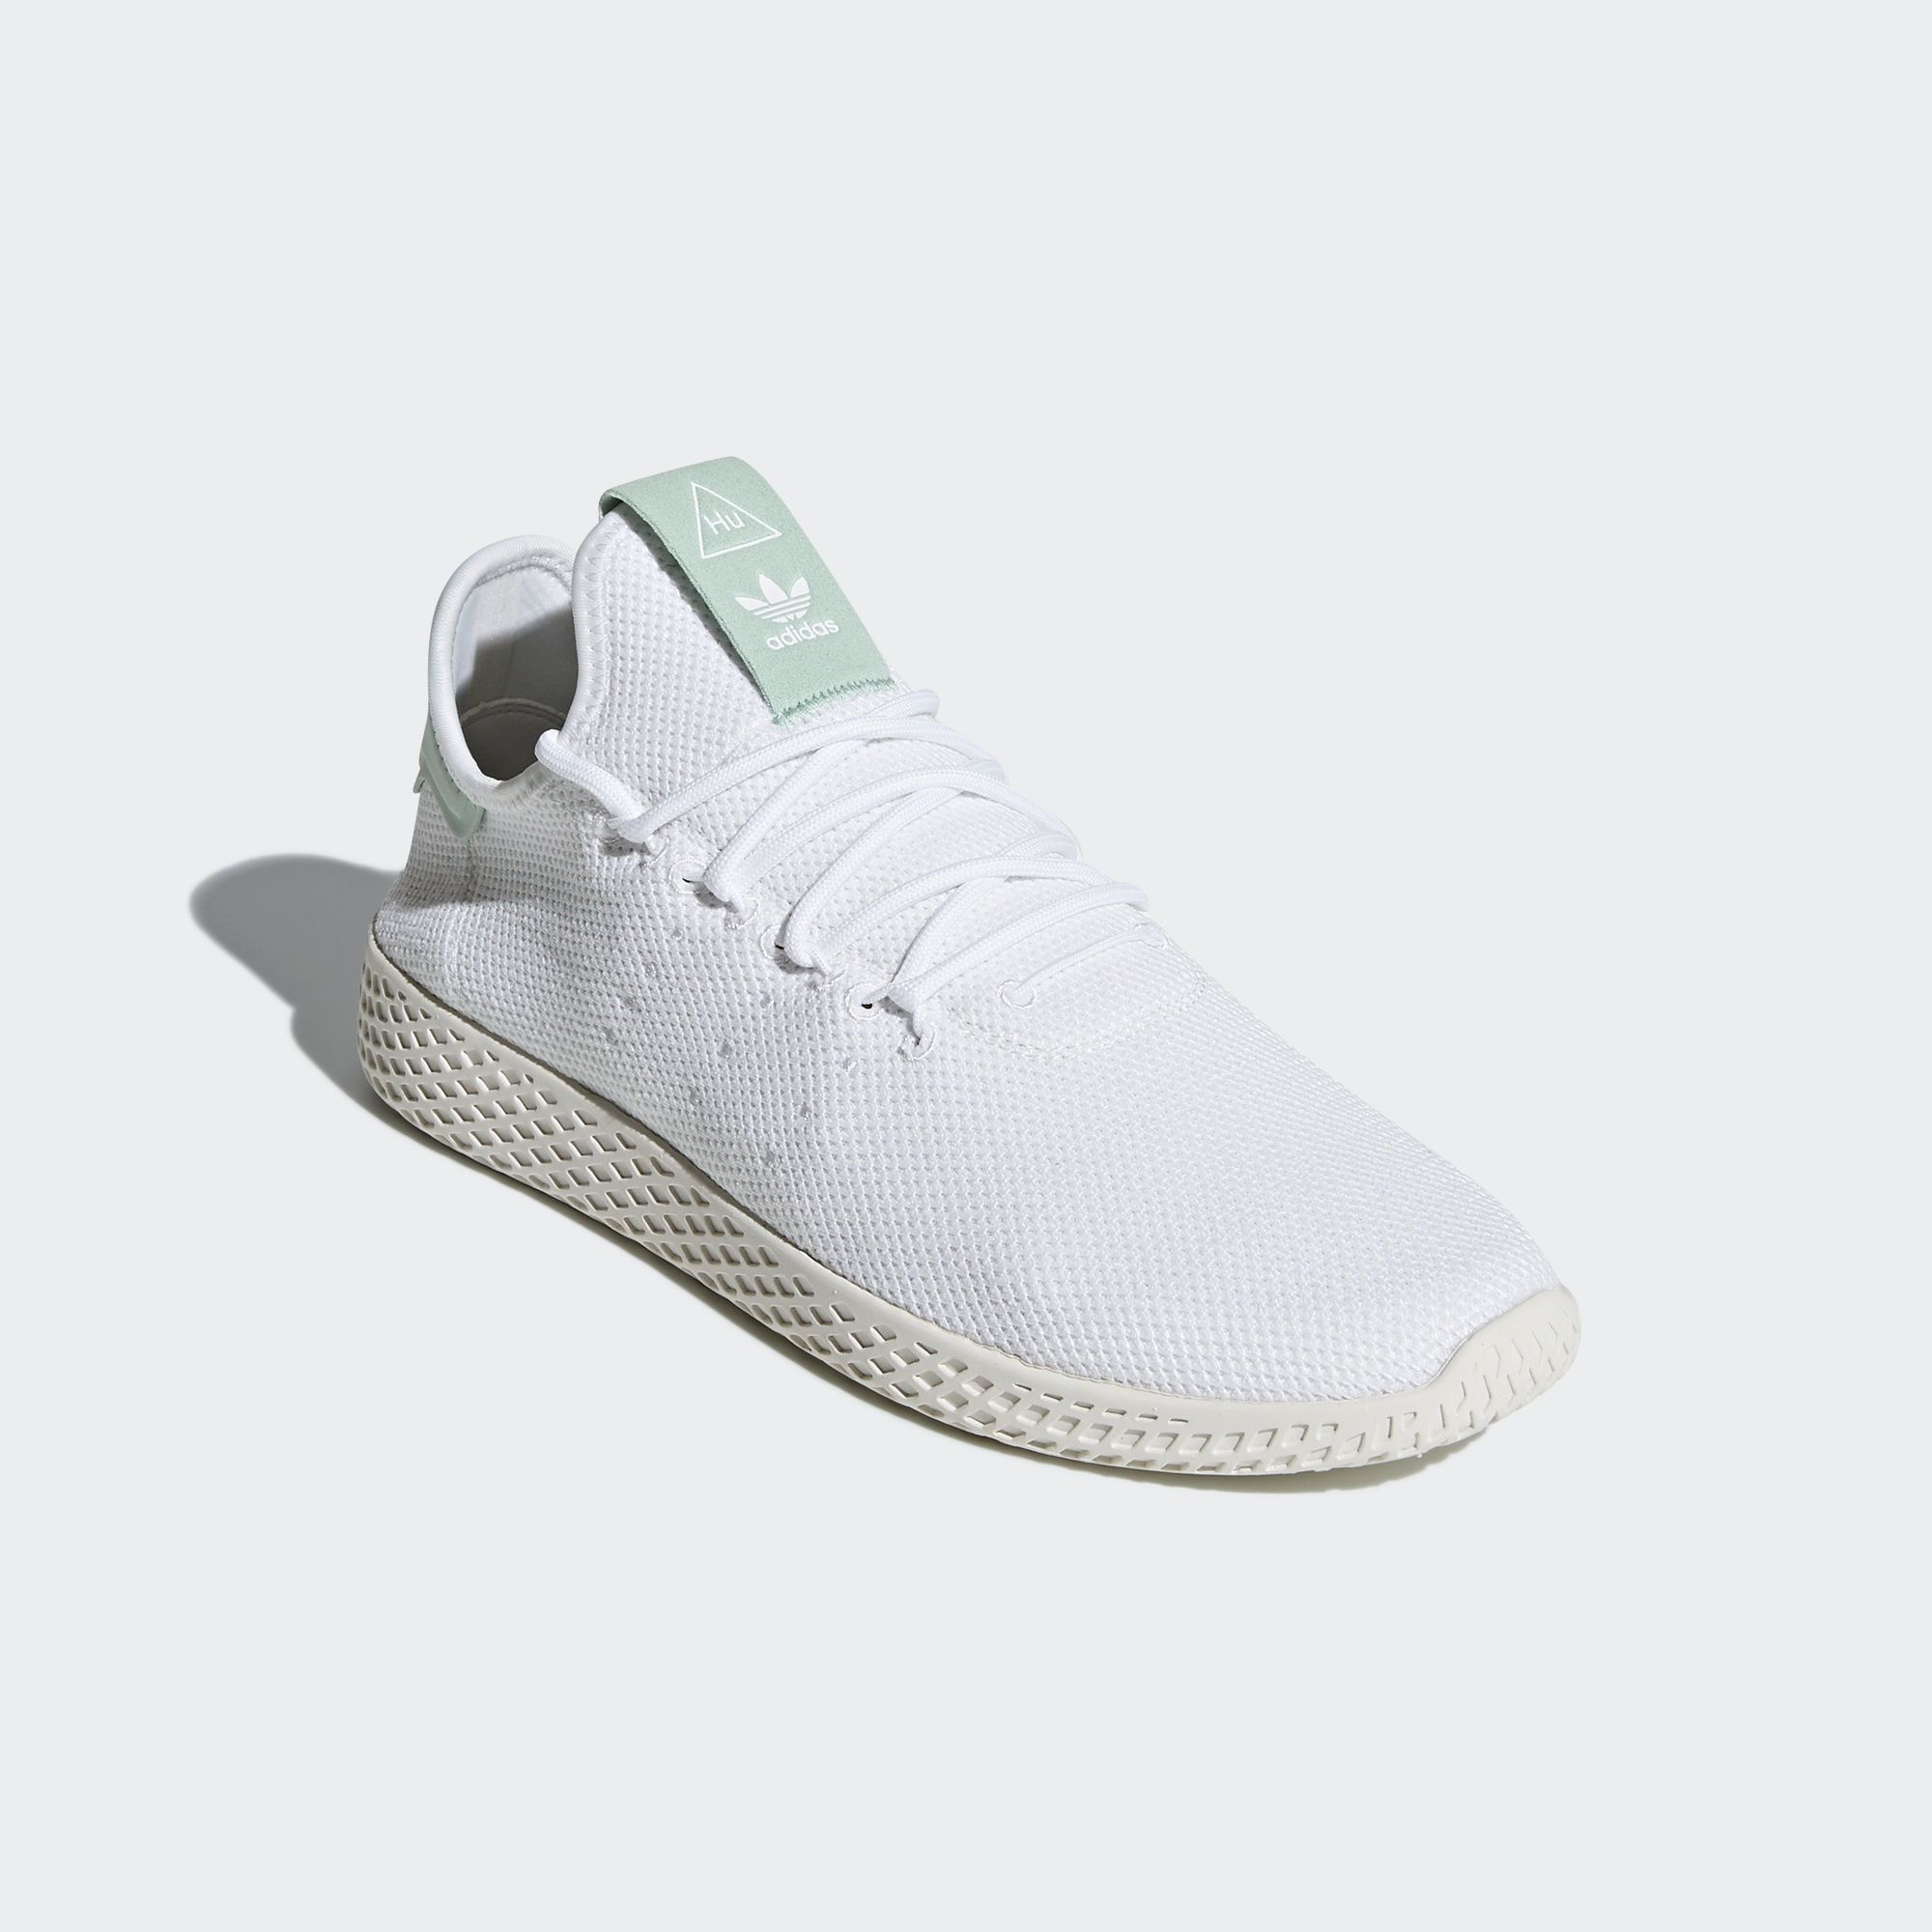 1535fd73f adidas Pharrell Williams Tennis Hu Shoes - White